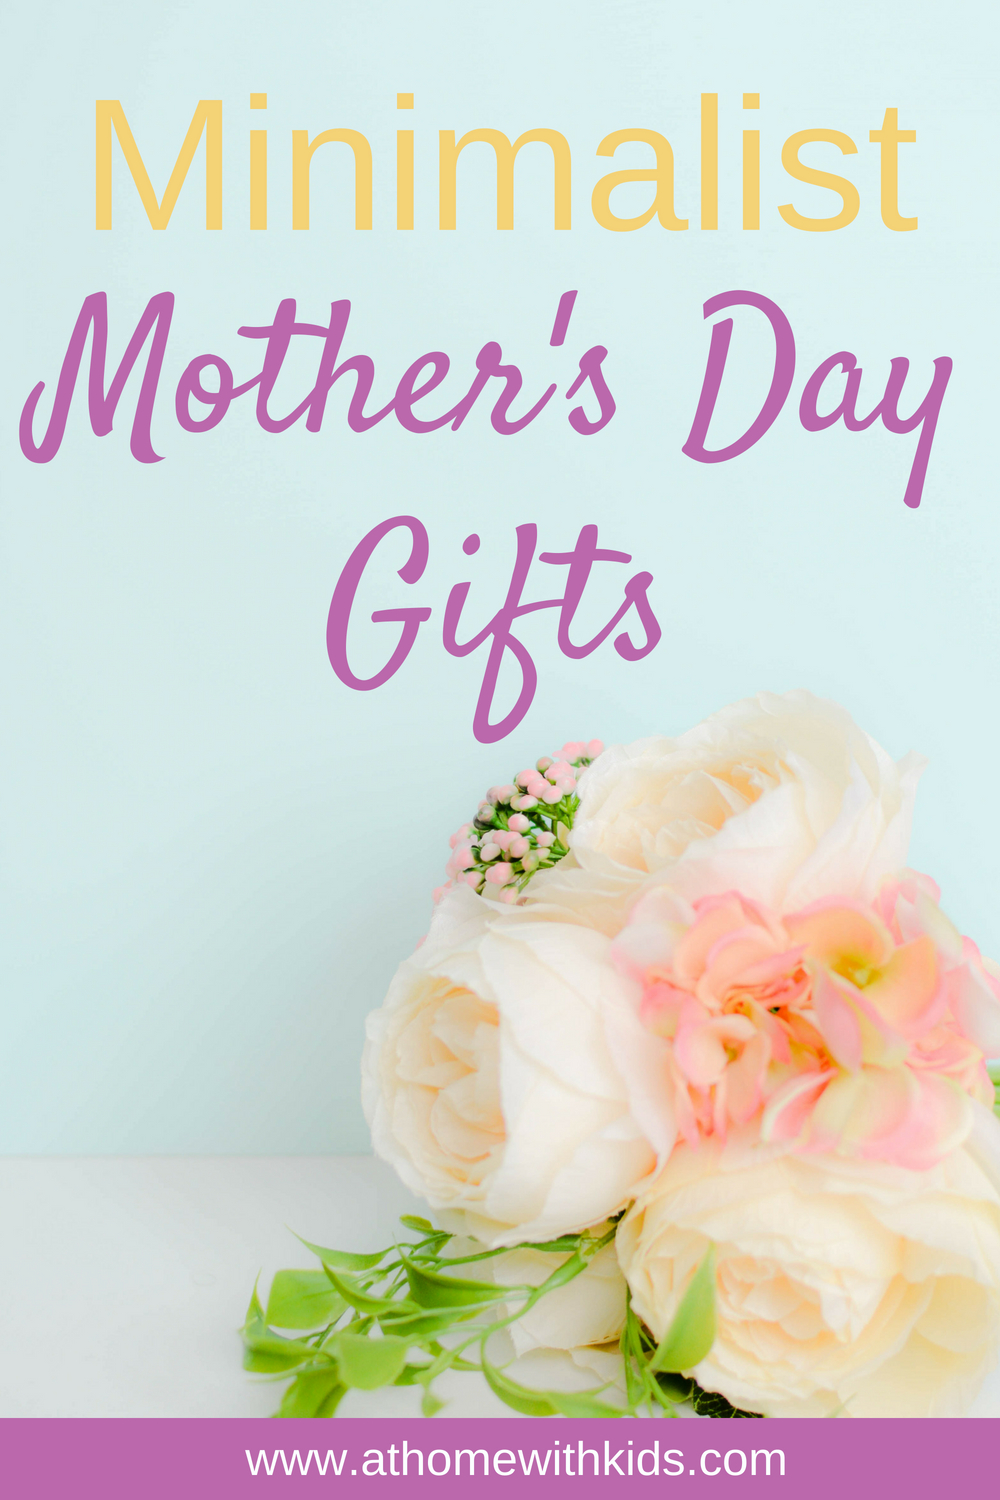 mother's day gifts for minimalists